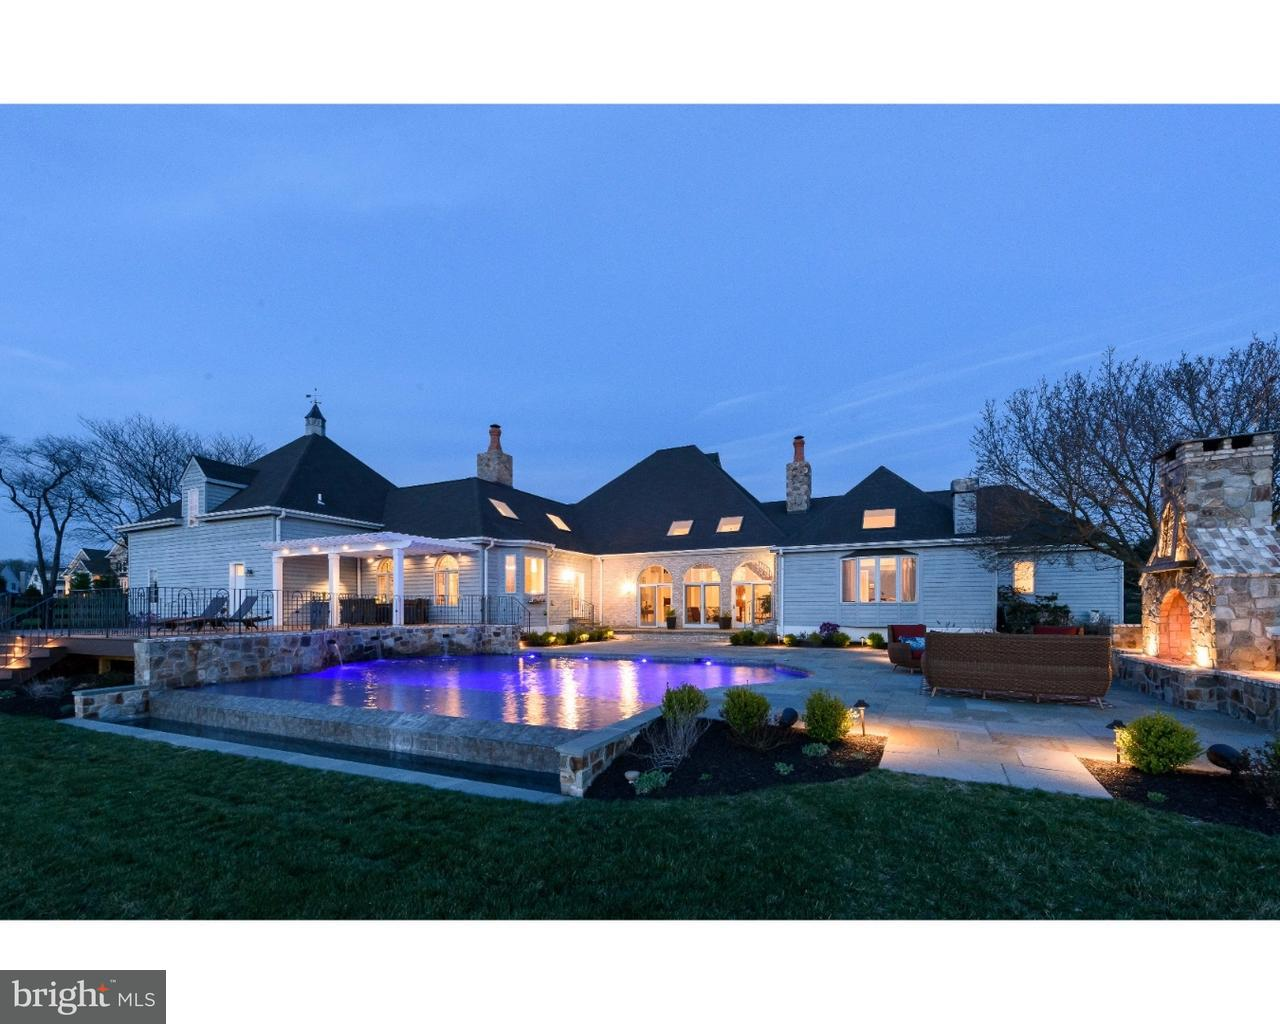 104 GREY DOVE DR, CHADDS FORD - Listed at $1,495,000, CHADDS FORD